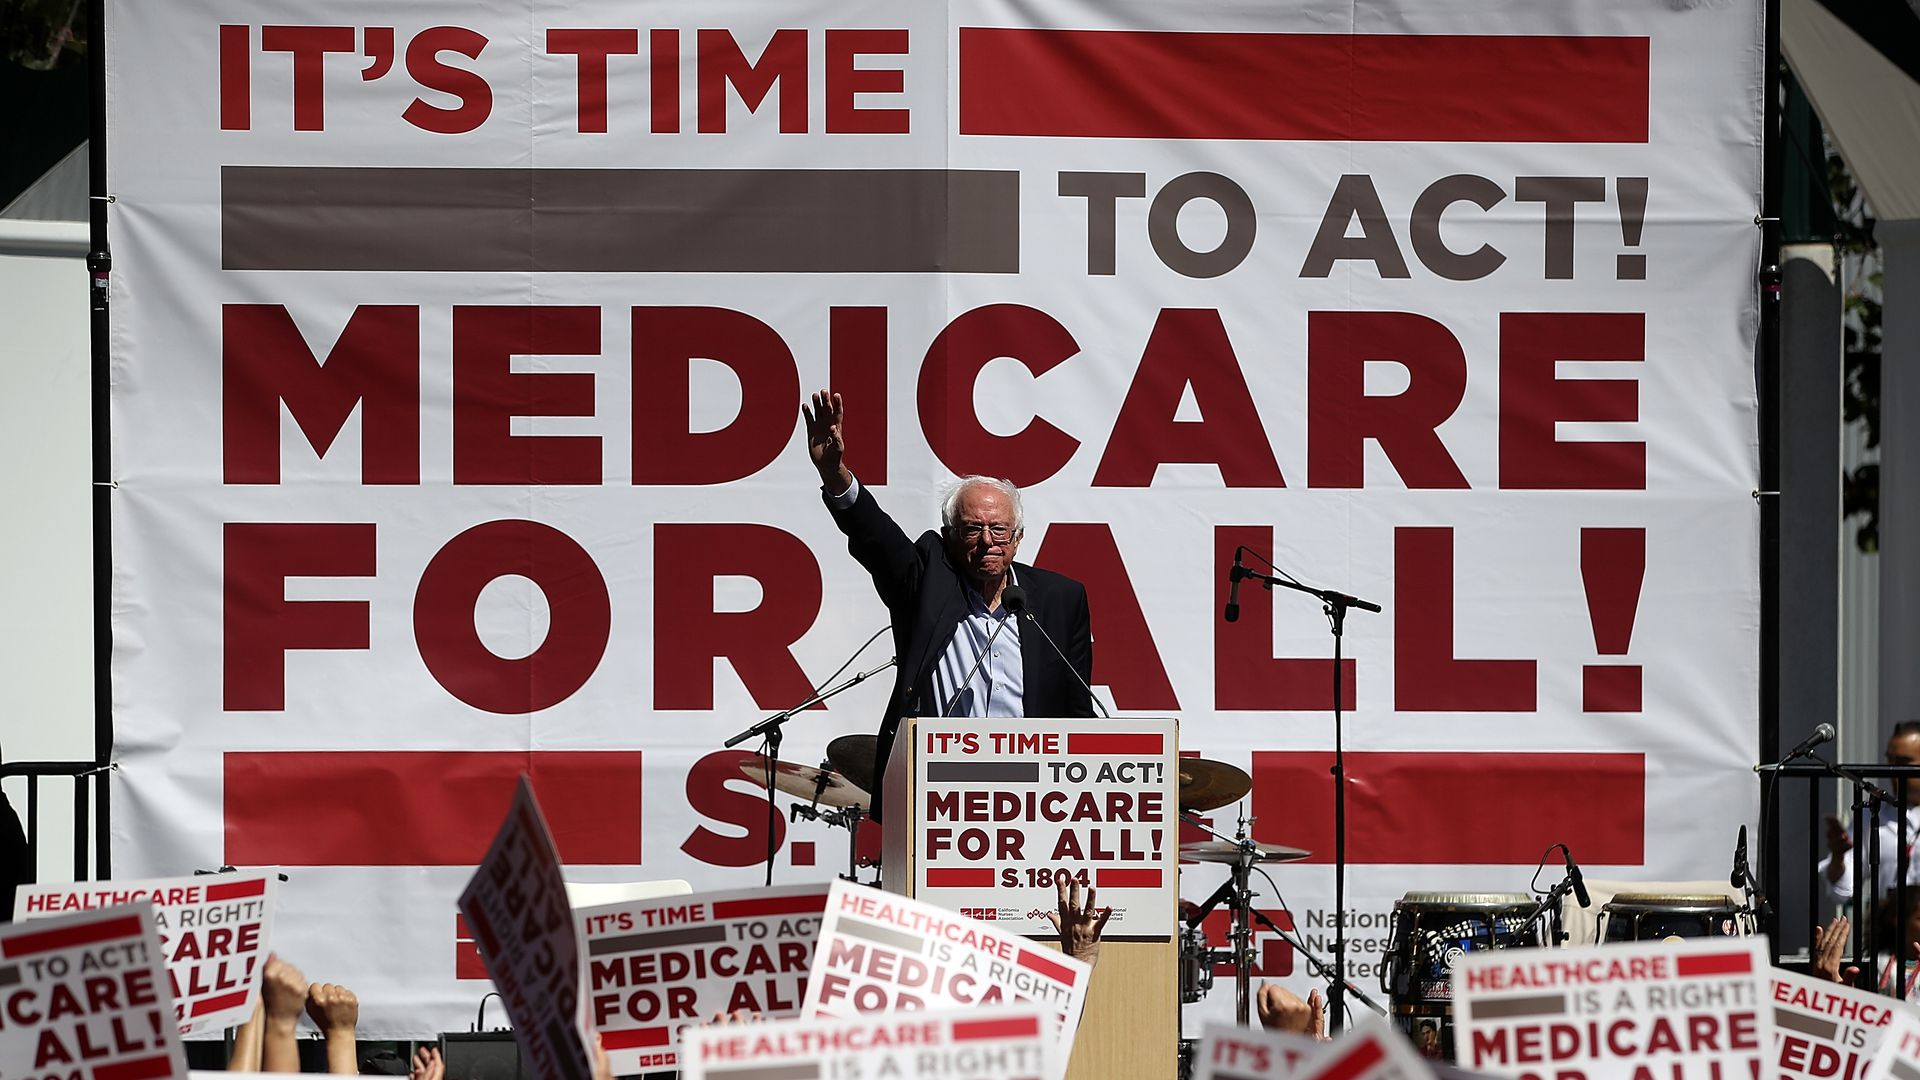 Bernie Sanders at Medicare for All rally